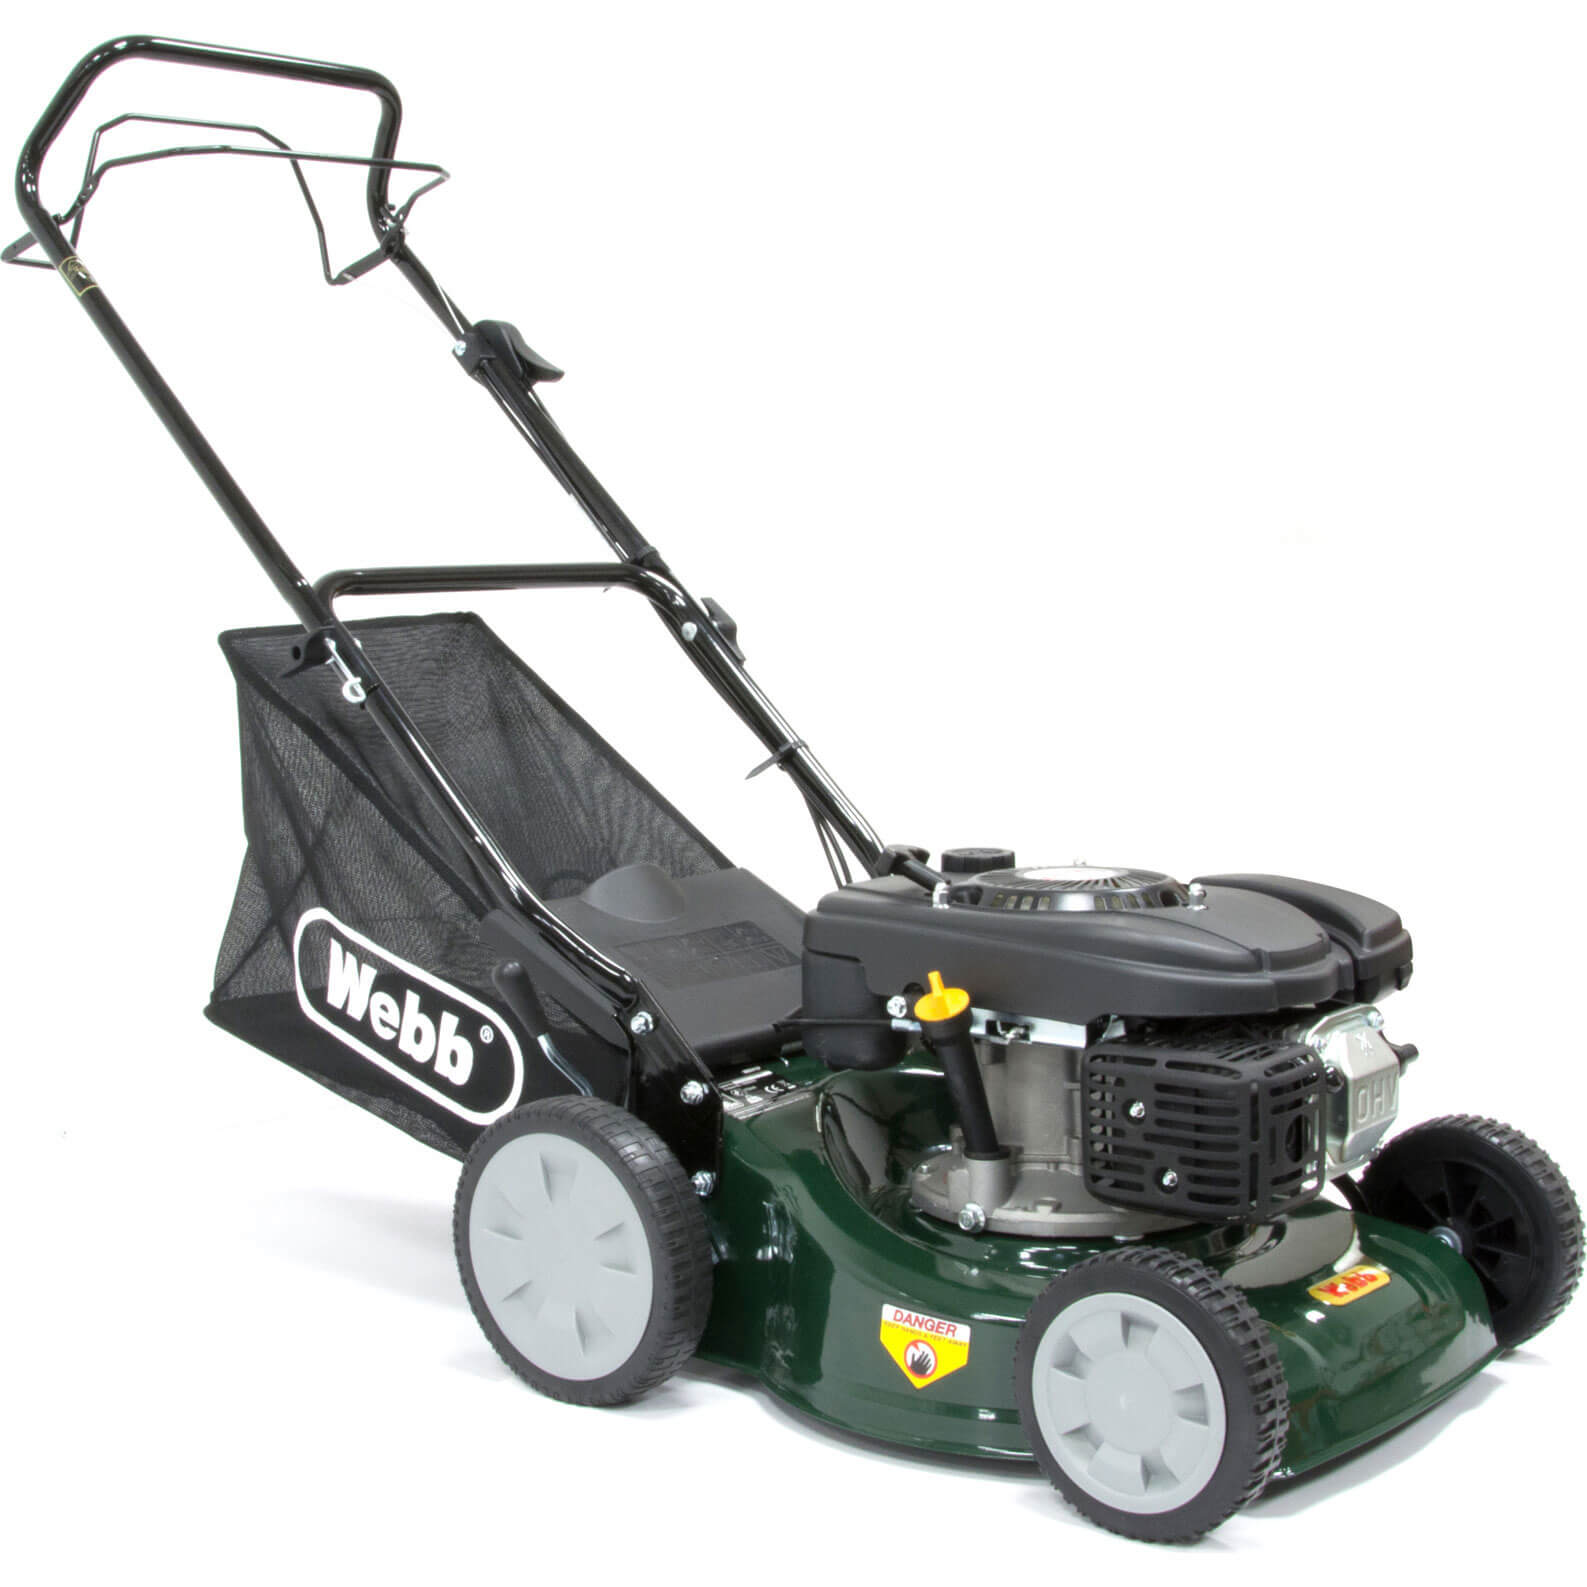 Image of Webb WER41SP Self Propelled Petrol Rotary Lawnmower 400mm